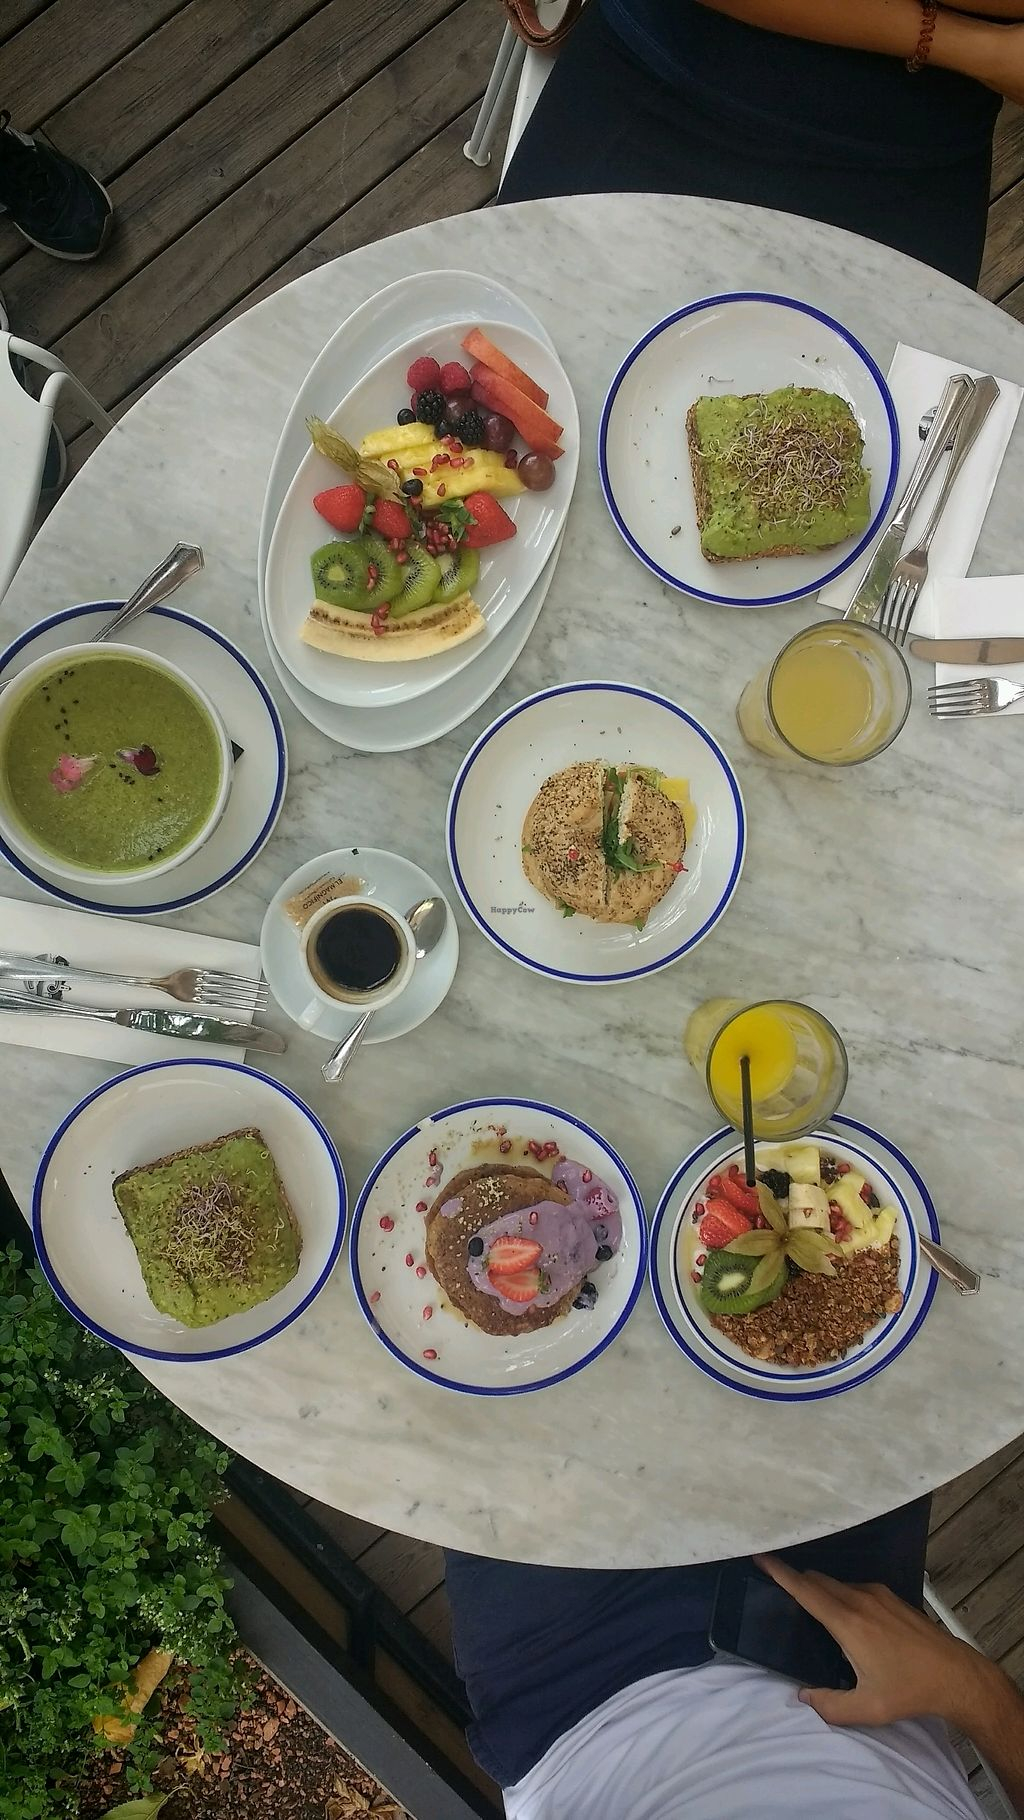 """Photo of Flax & Kale - Placa Castella  by <a href=""""/members/profile/Th%C3%A9liseFmkAulait"""">ThéliseFmkAulait</a> <br/>Chia bagel, kale soup, avocado toasts <br/> September 4, 2017  - <a href='/contact/abuse/image/53077/300857'>Report</a>"""